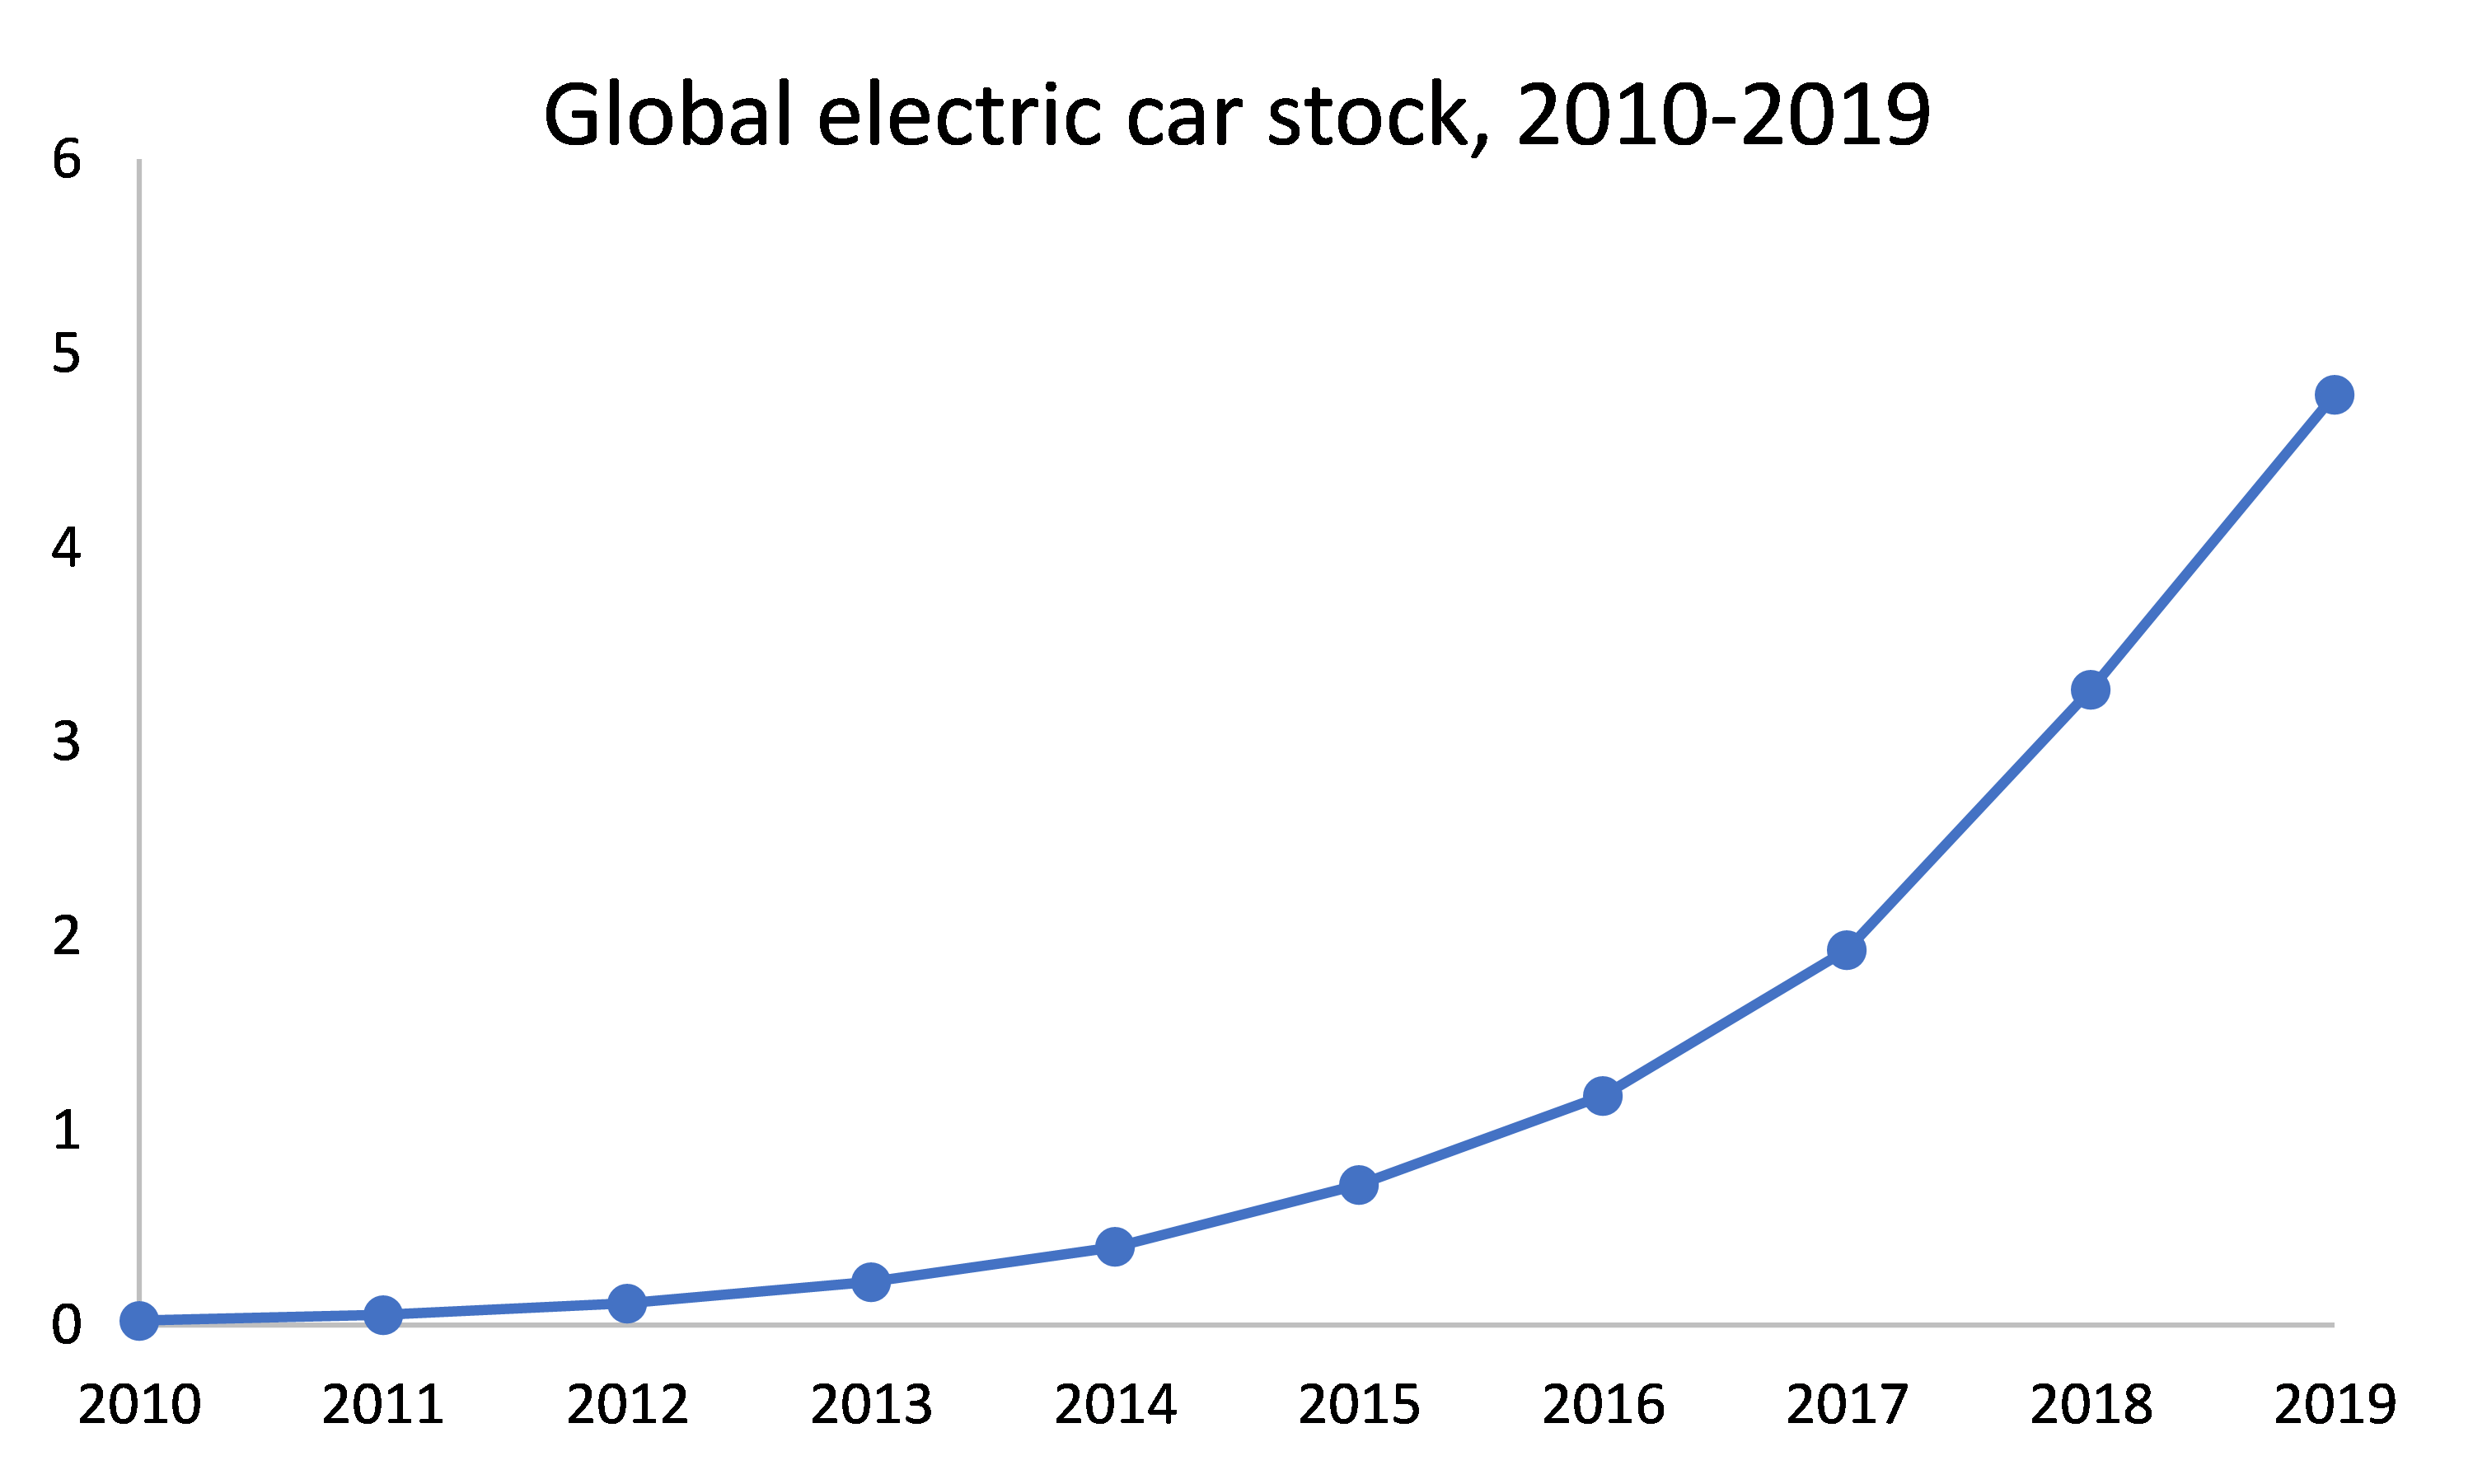 global-number-of-electric-cars-deployed-in-the-world-for-2010-2019